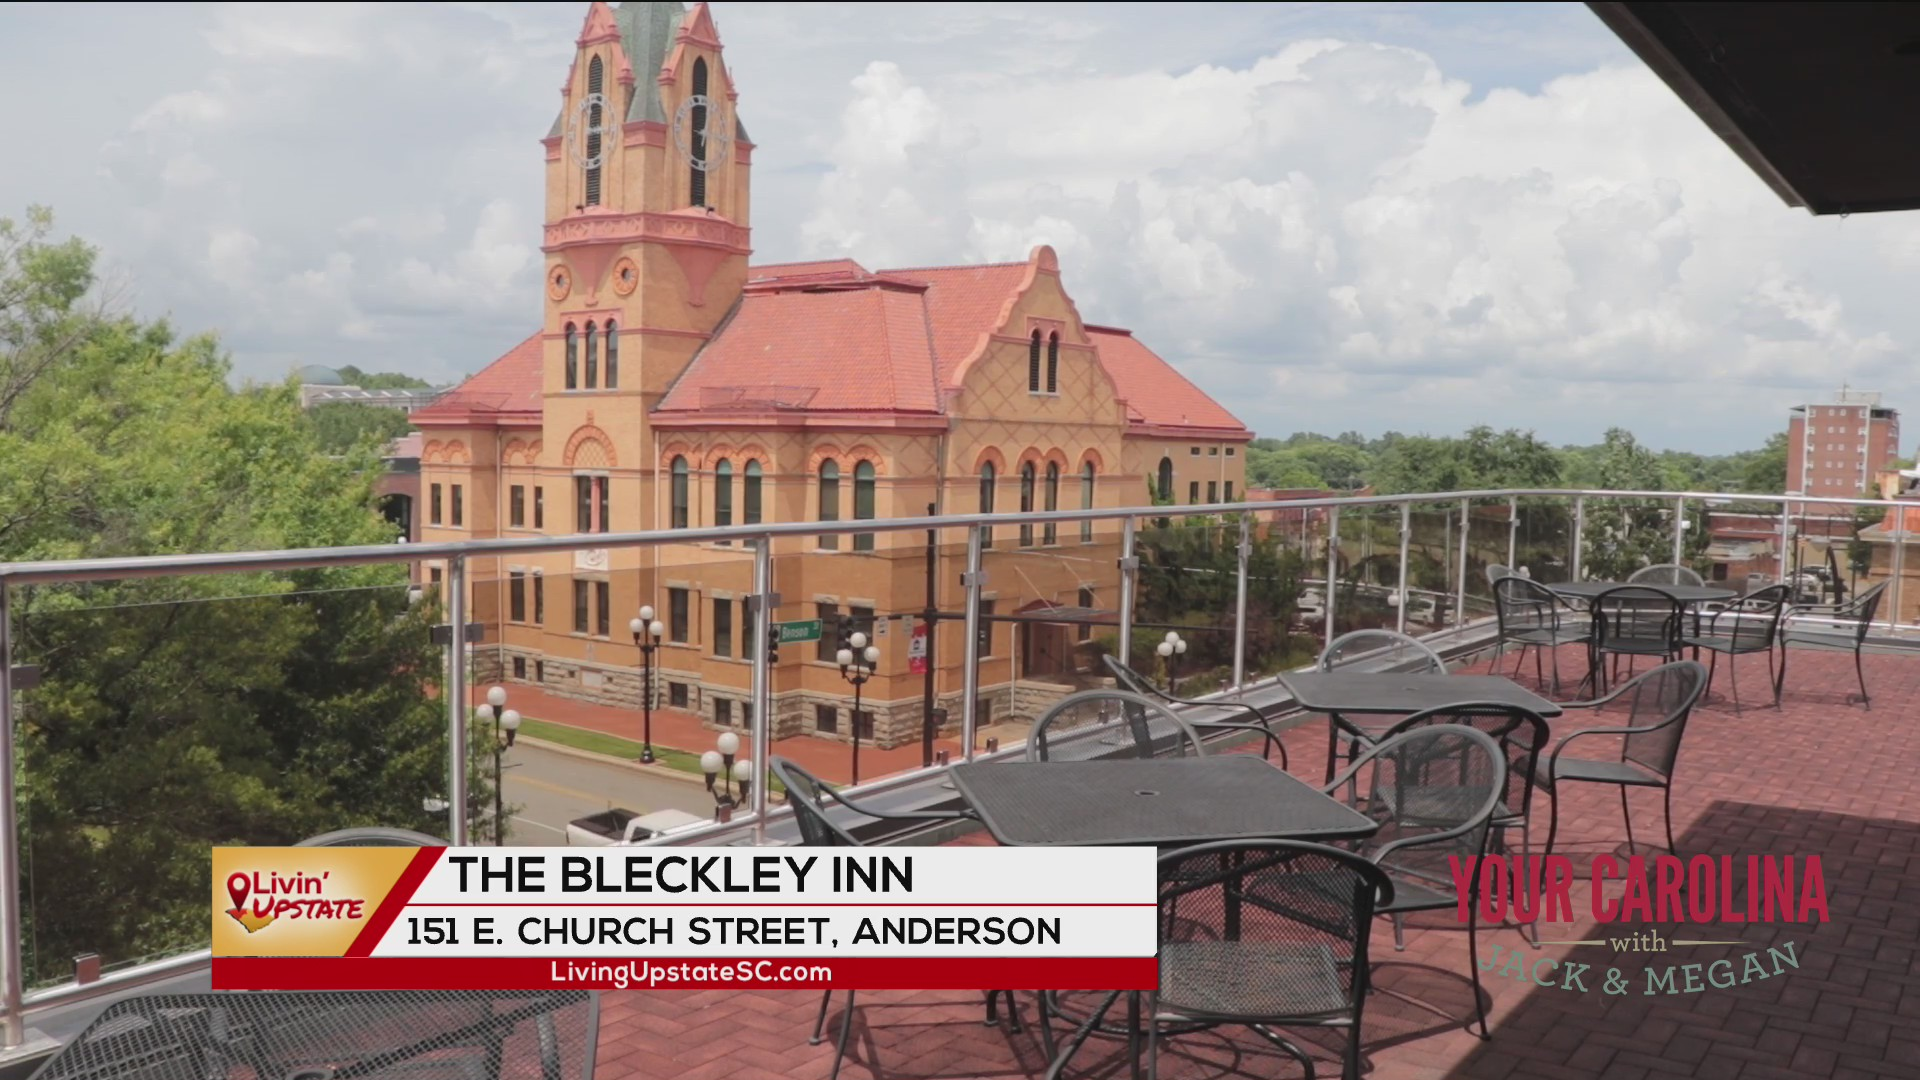 The Bleckley properties reclaim portions of Anderson's past with downtown revitalization projects